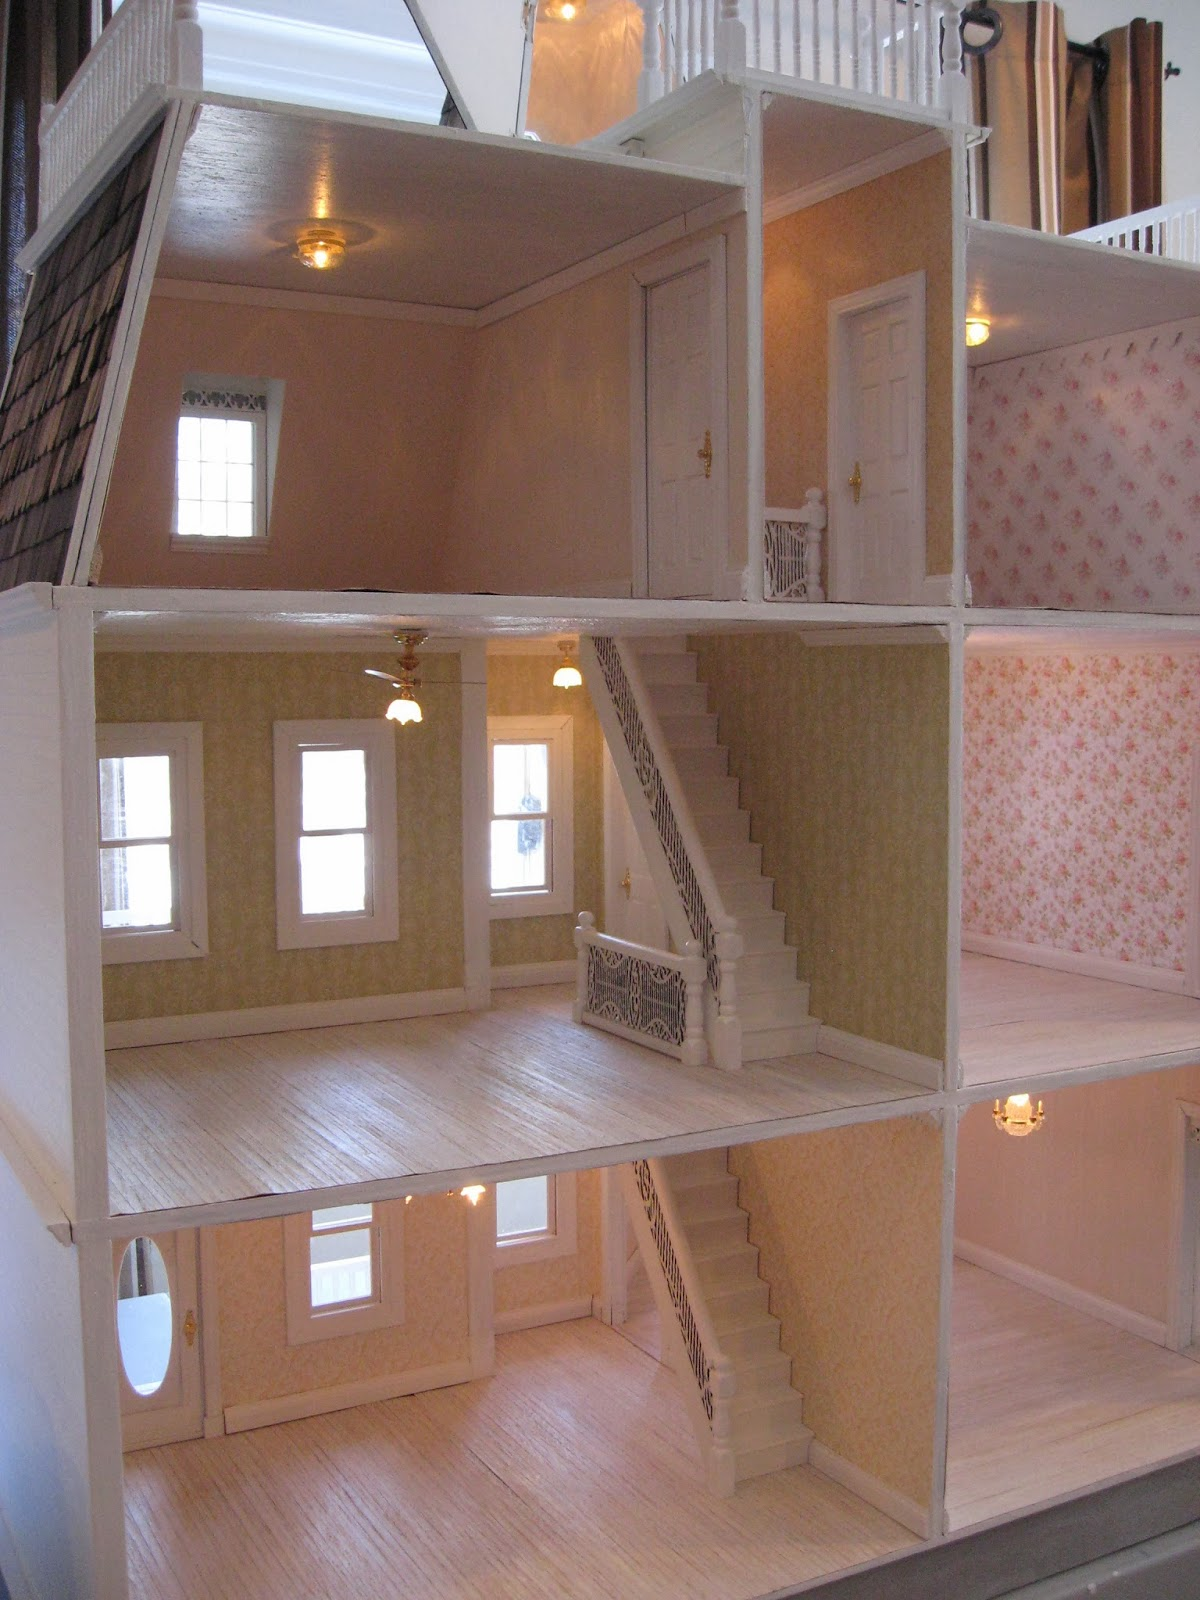 lighting for dollhouses. All Rooms Have 1-2 Ceiling Lights That Add So Much Warmth And Glow To The Rooms. Lighting For Dollhouses S